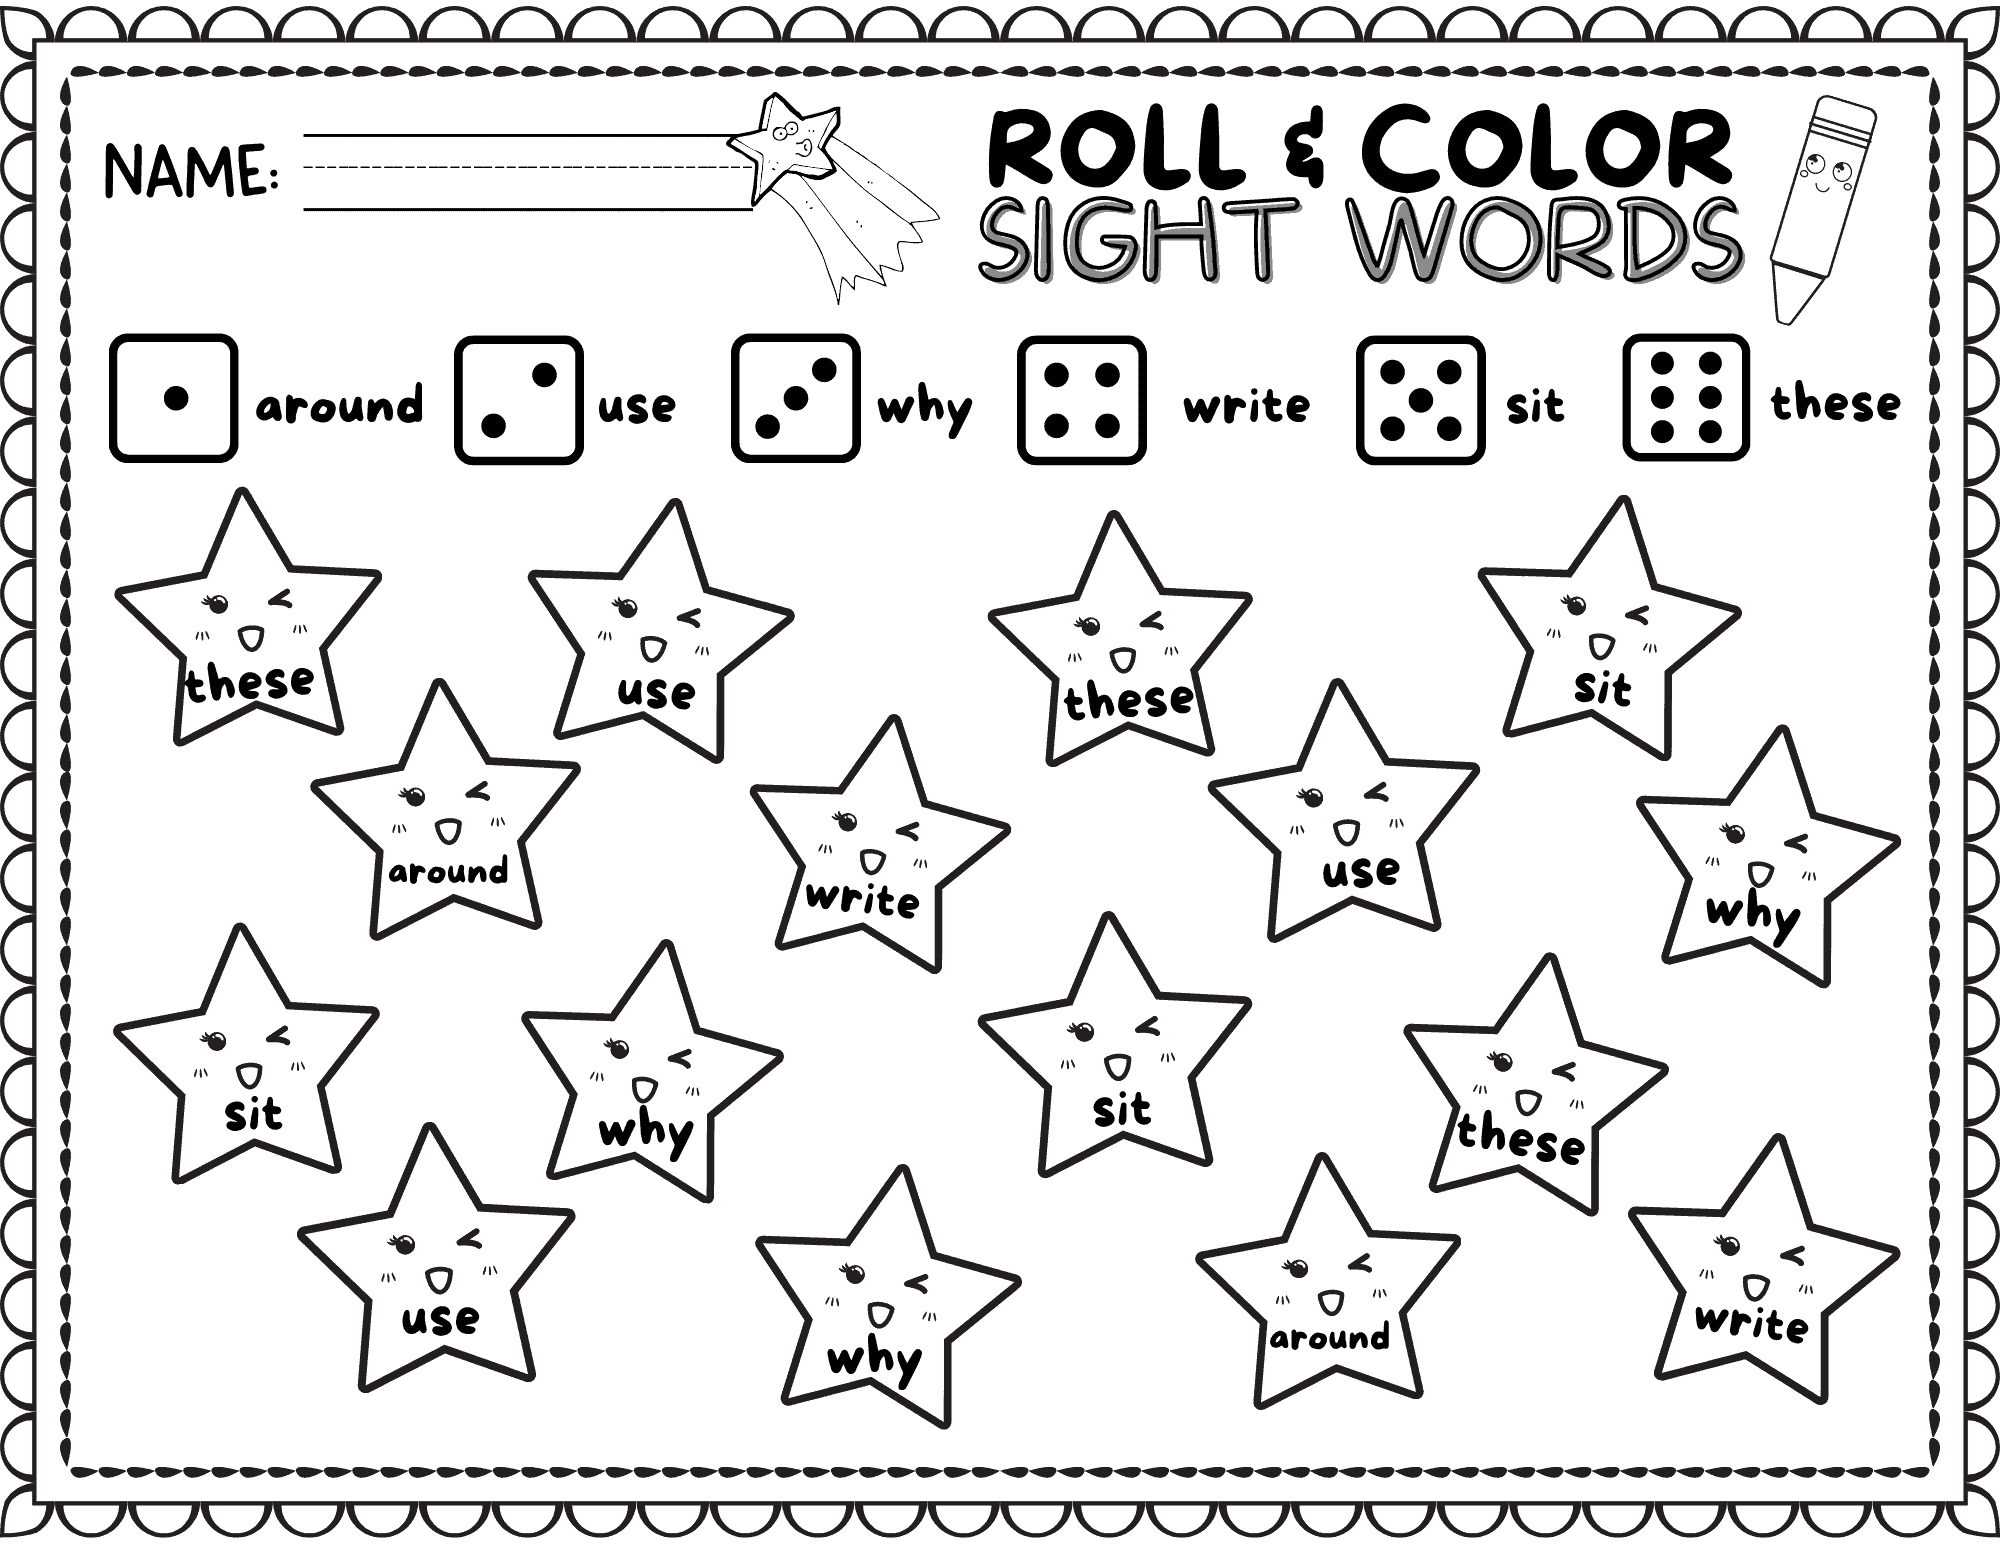 10 Roll Amp Color Sight Word Worksheets For Sight Word Fun